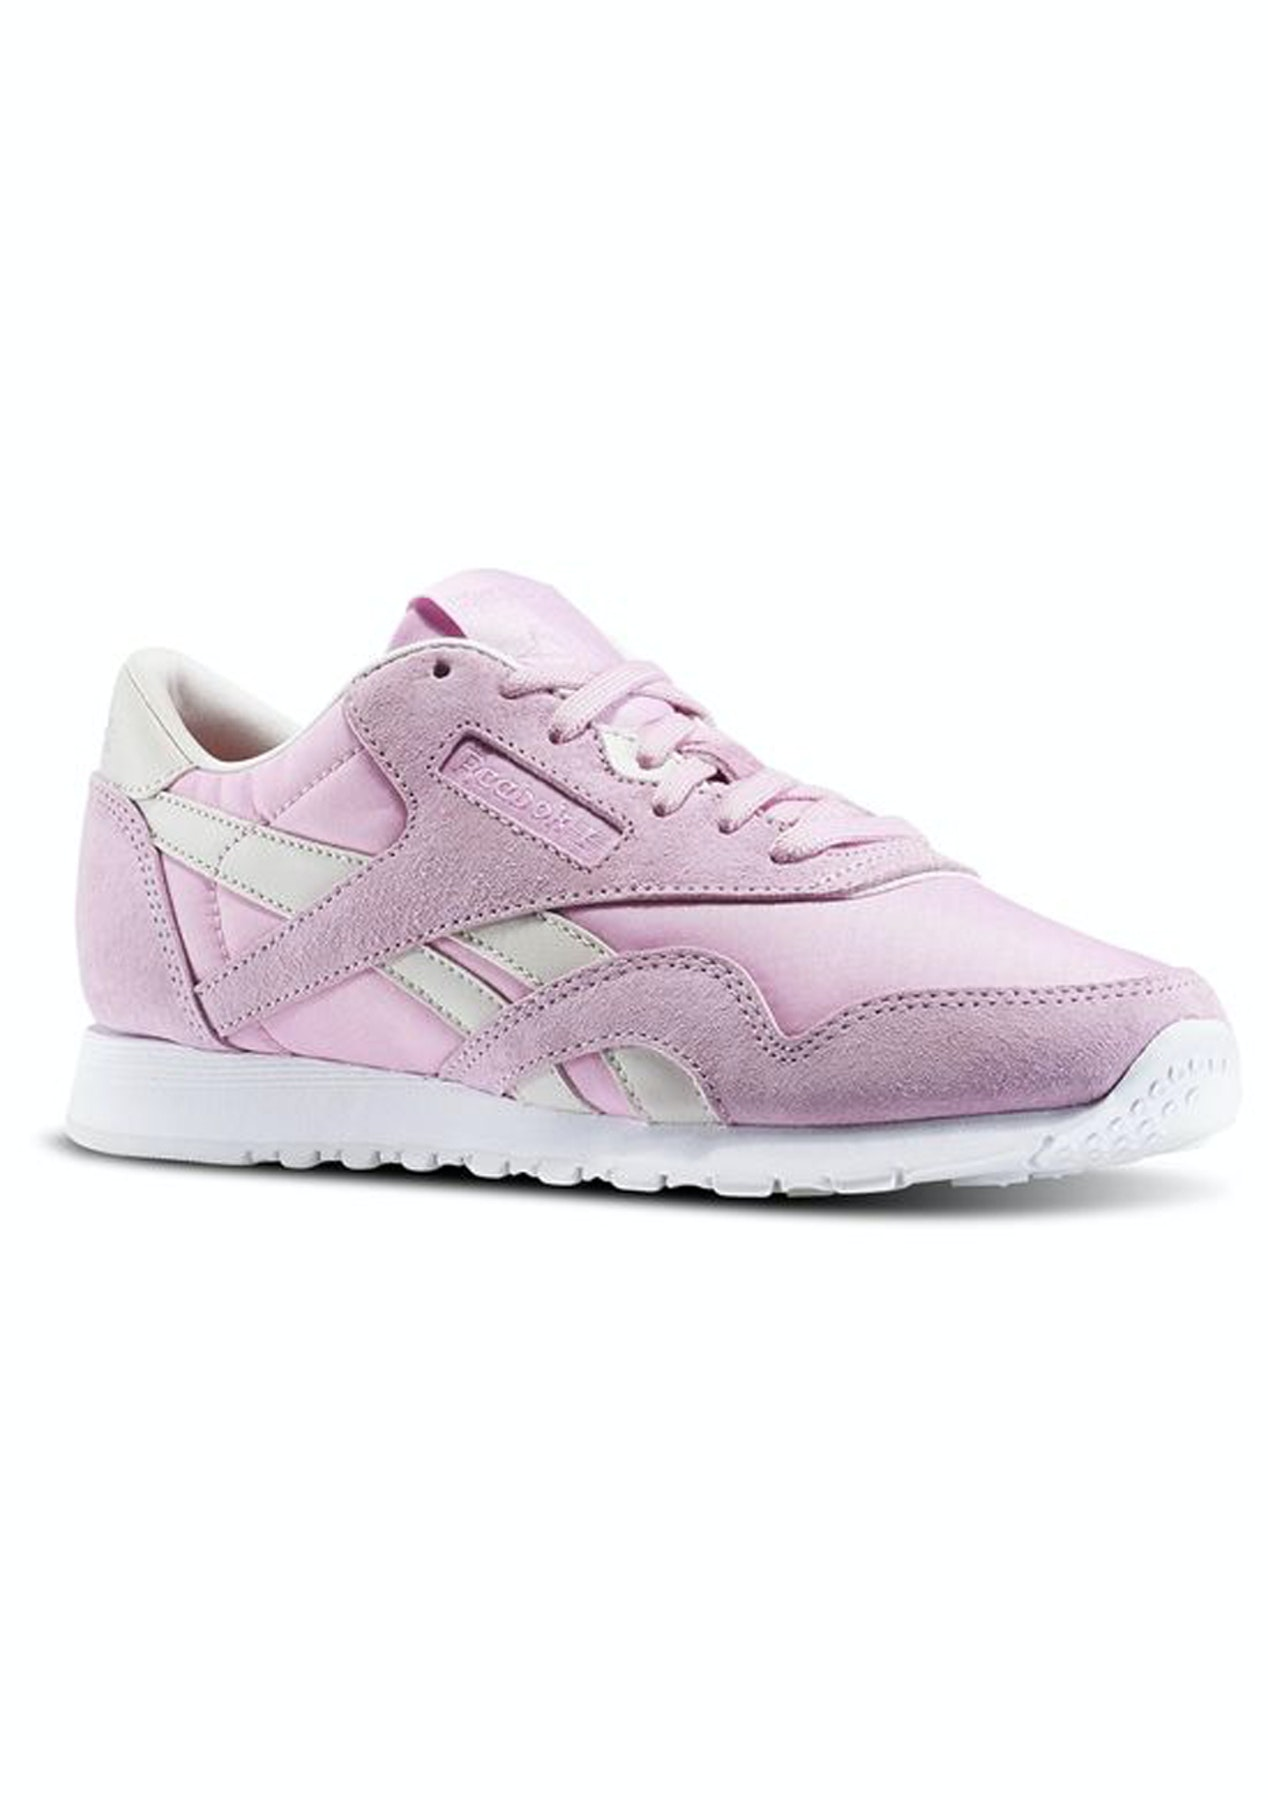 655246a33e8 Reebok Womens - Cl Nylon X Face - Vision Kindness - Last Ones  Shoes   Bags  - Onceit